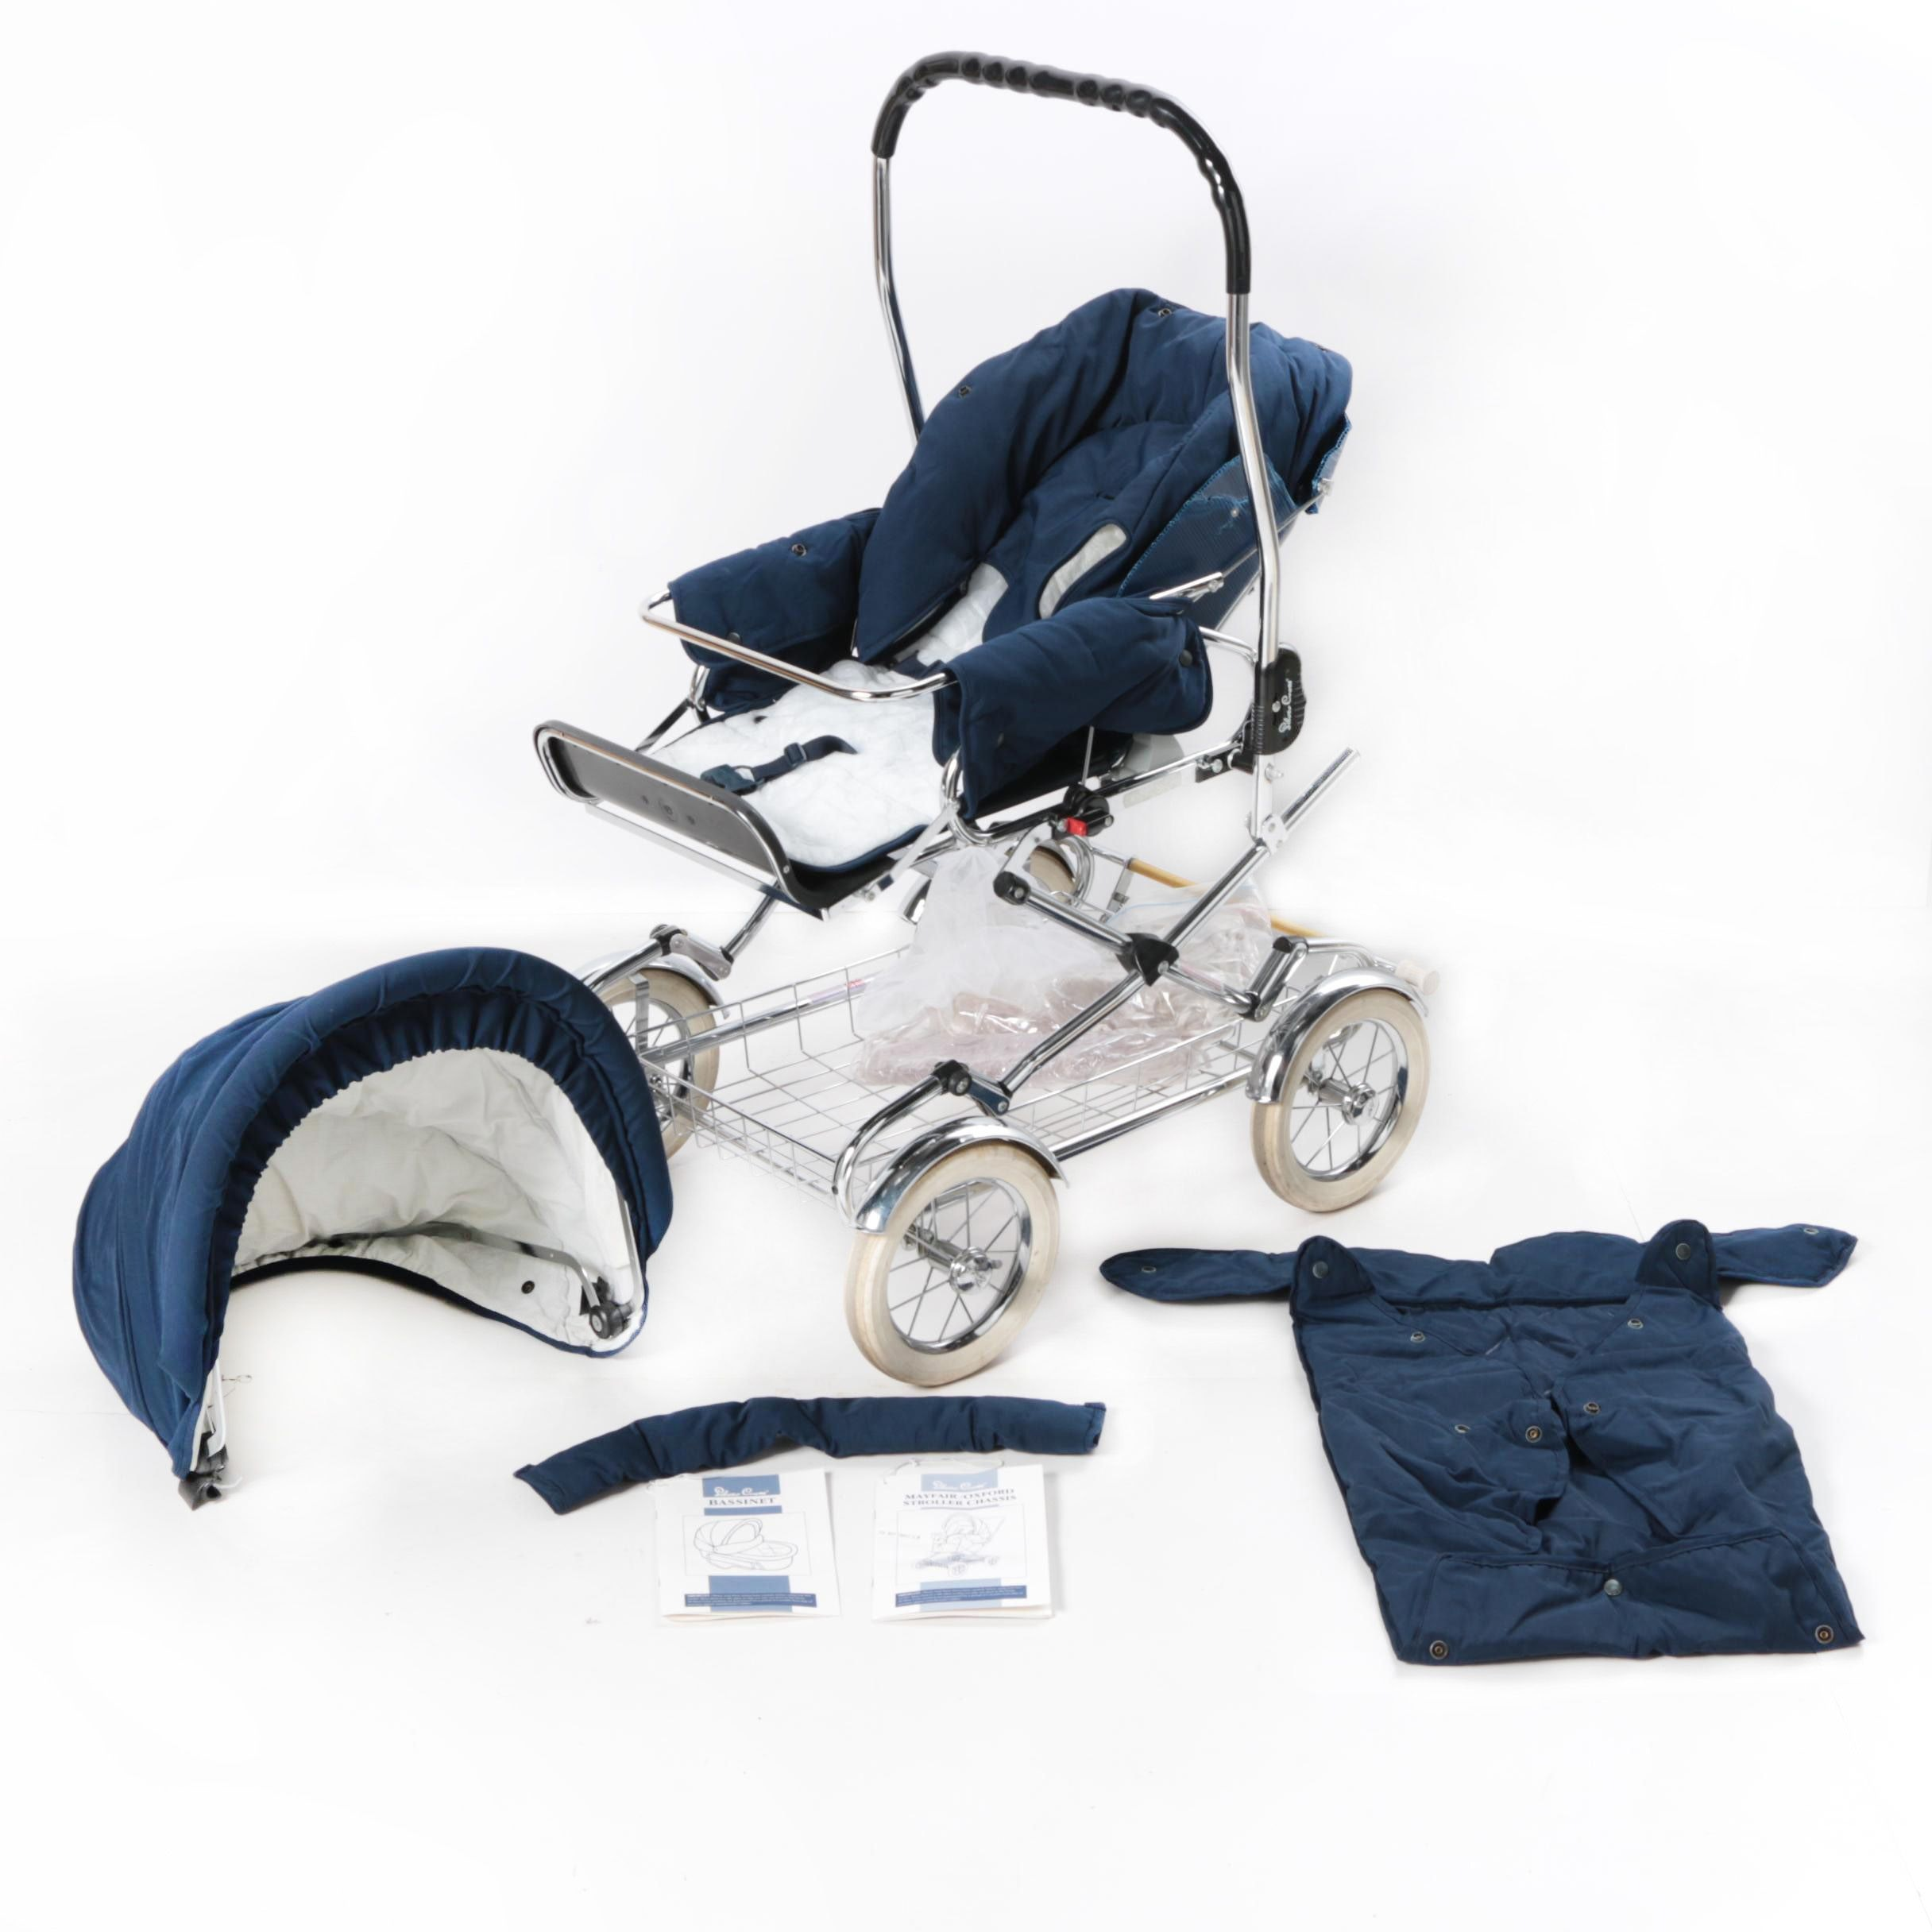 English Silver Cross Baby Carriage